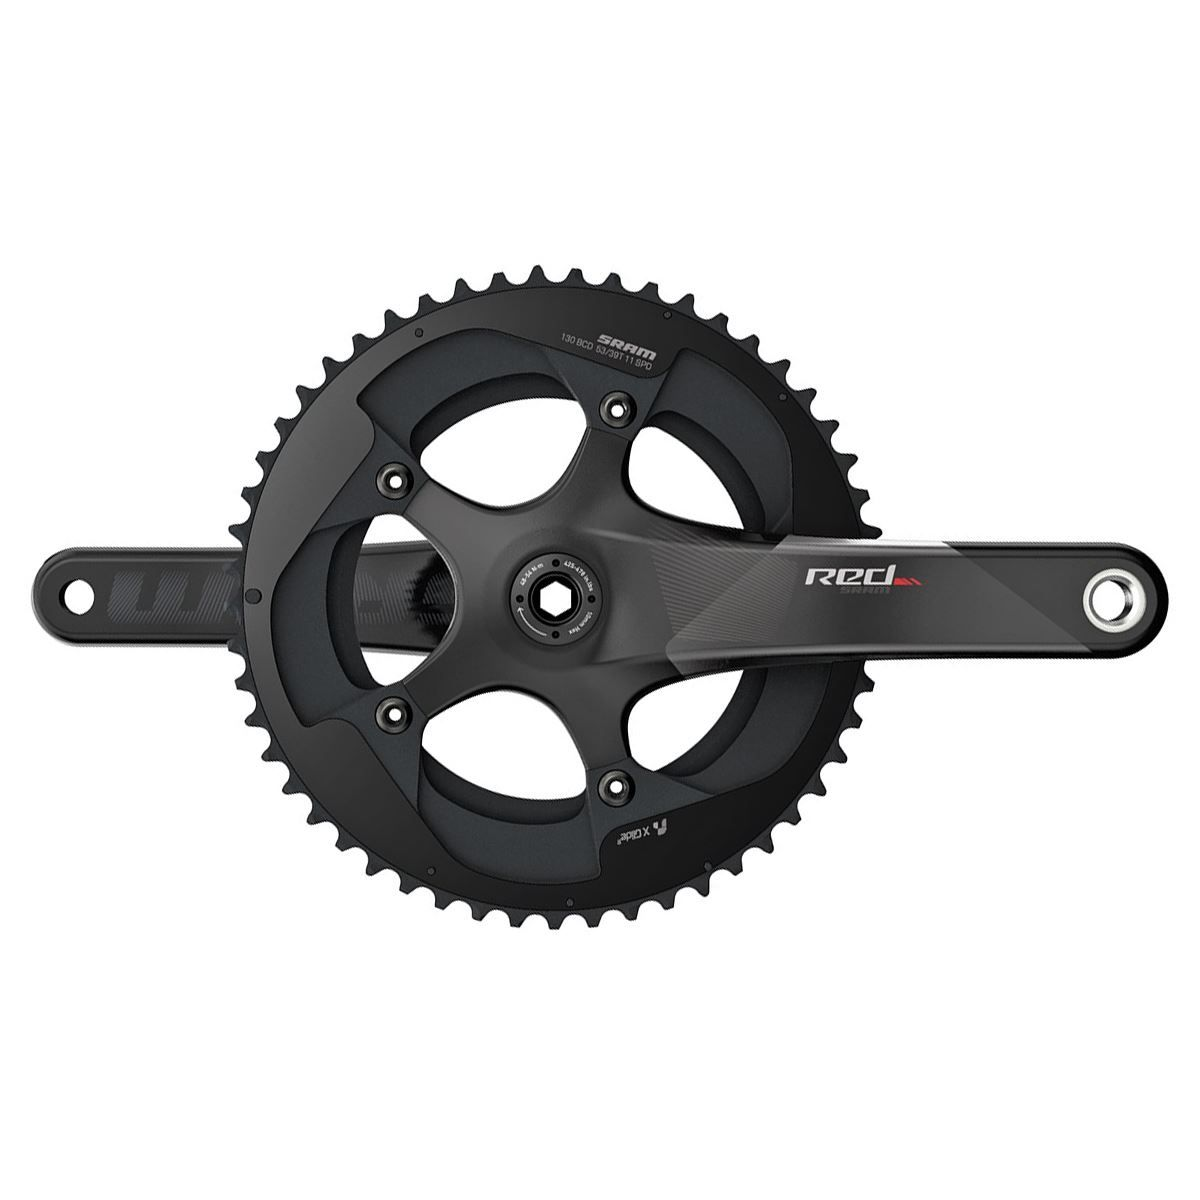 Sram Crank Set Red Bb30 177.5 53-39 Yaw Bearings Not Included C2:  11Spd 177.5Mm 53-39T